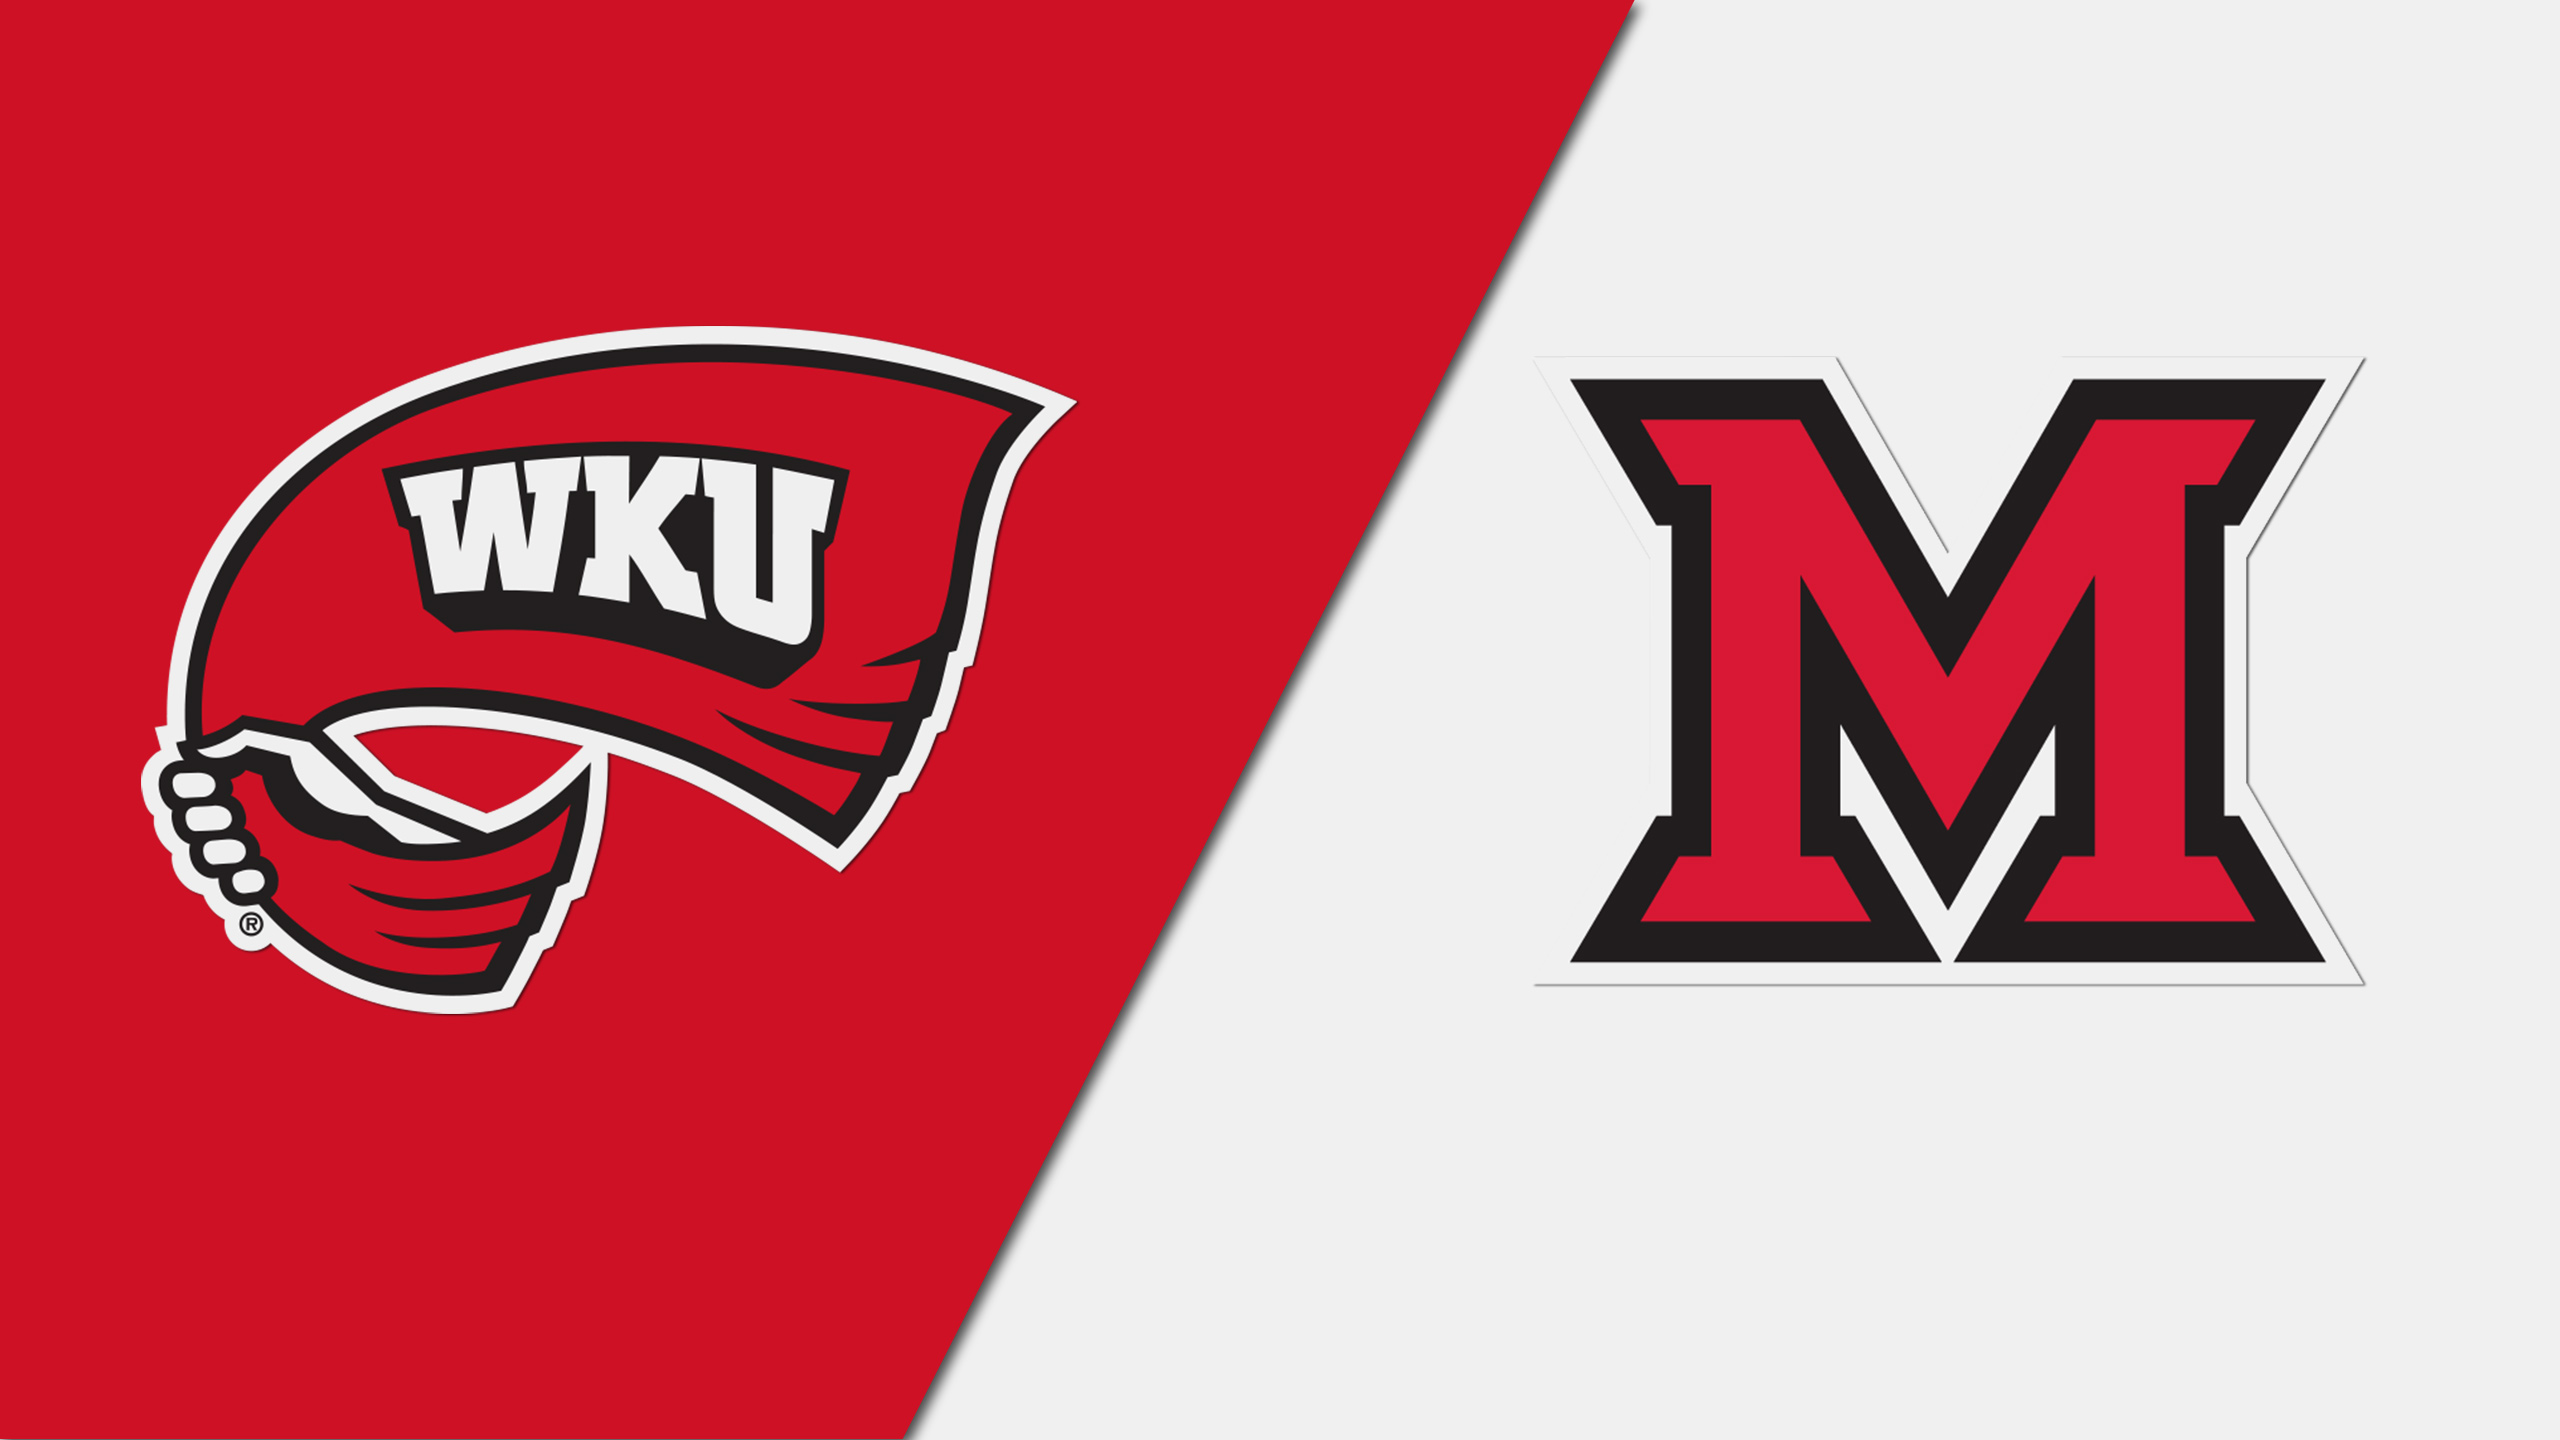 Western Kentucky vs. Miami (OH) (Women's NIT)